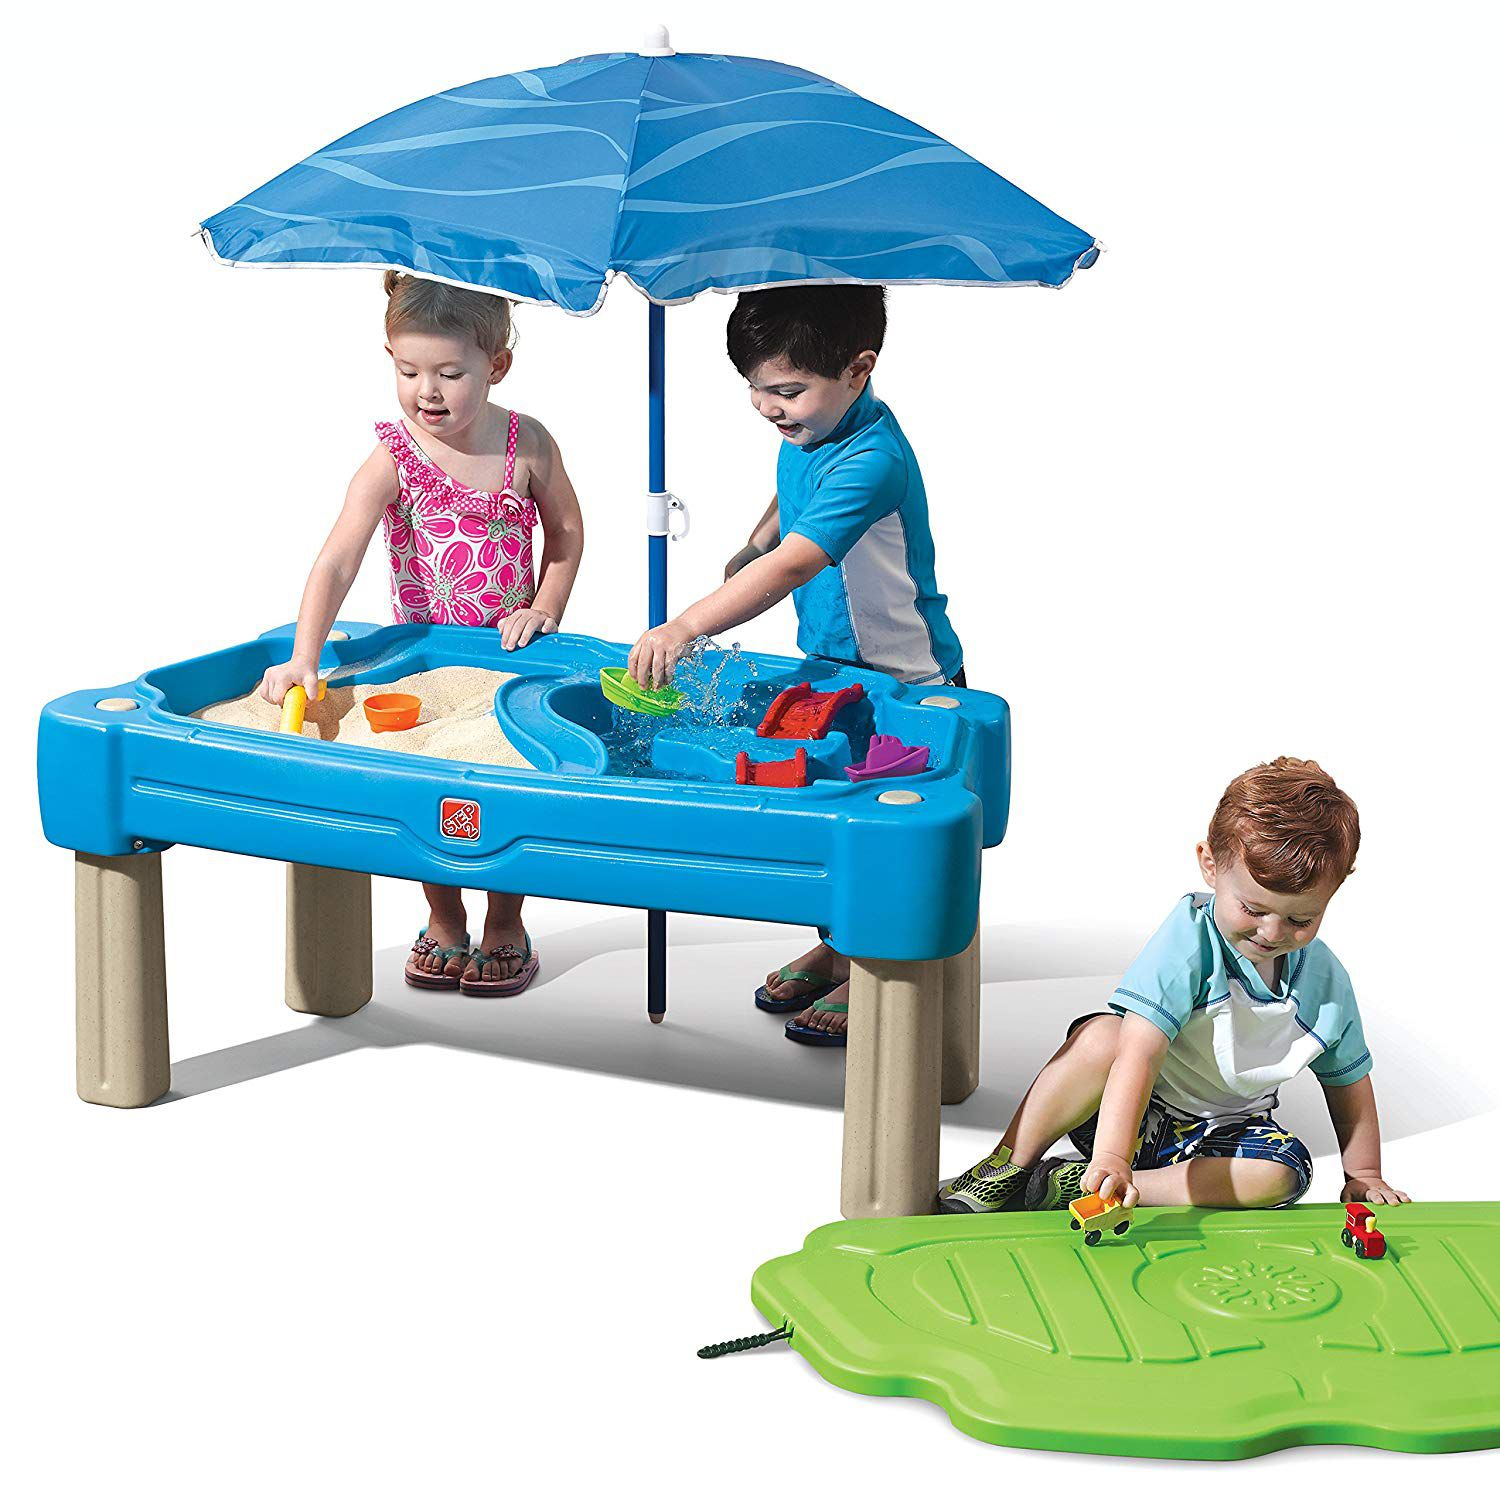 Outdoor Toys For Toddlers Of 2020